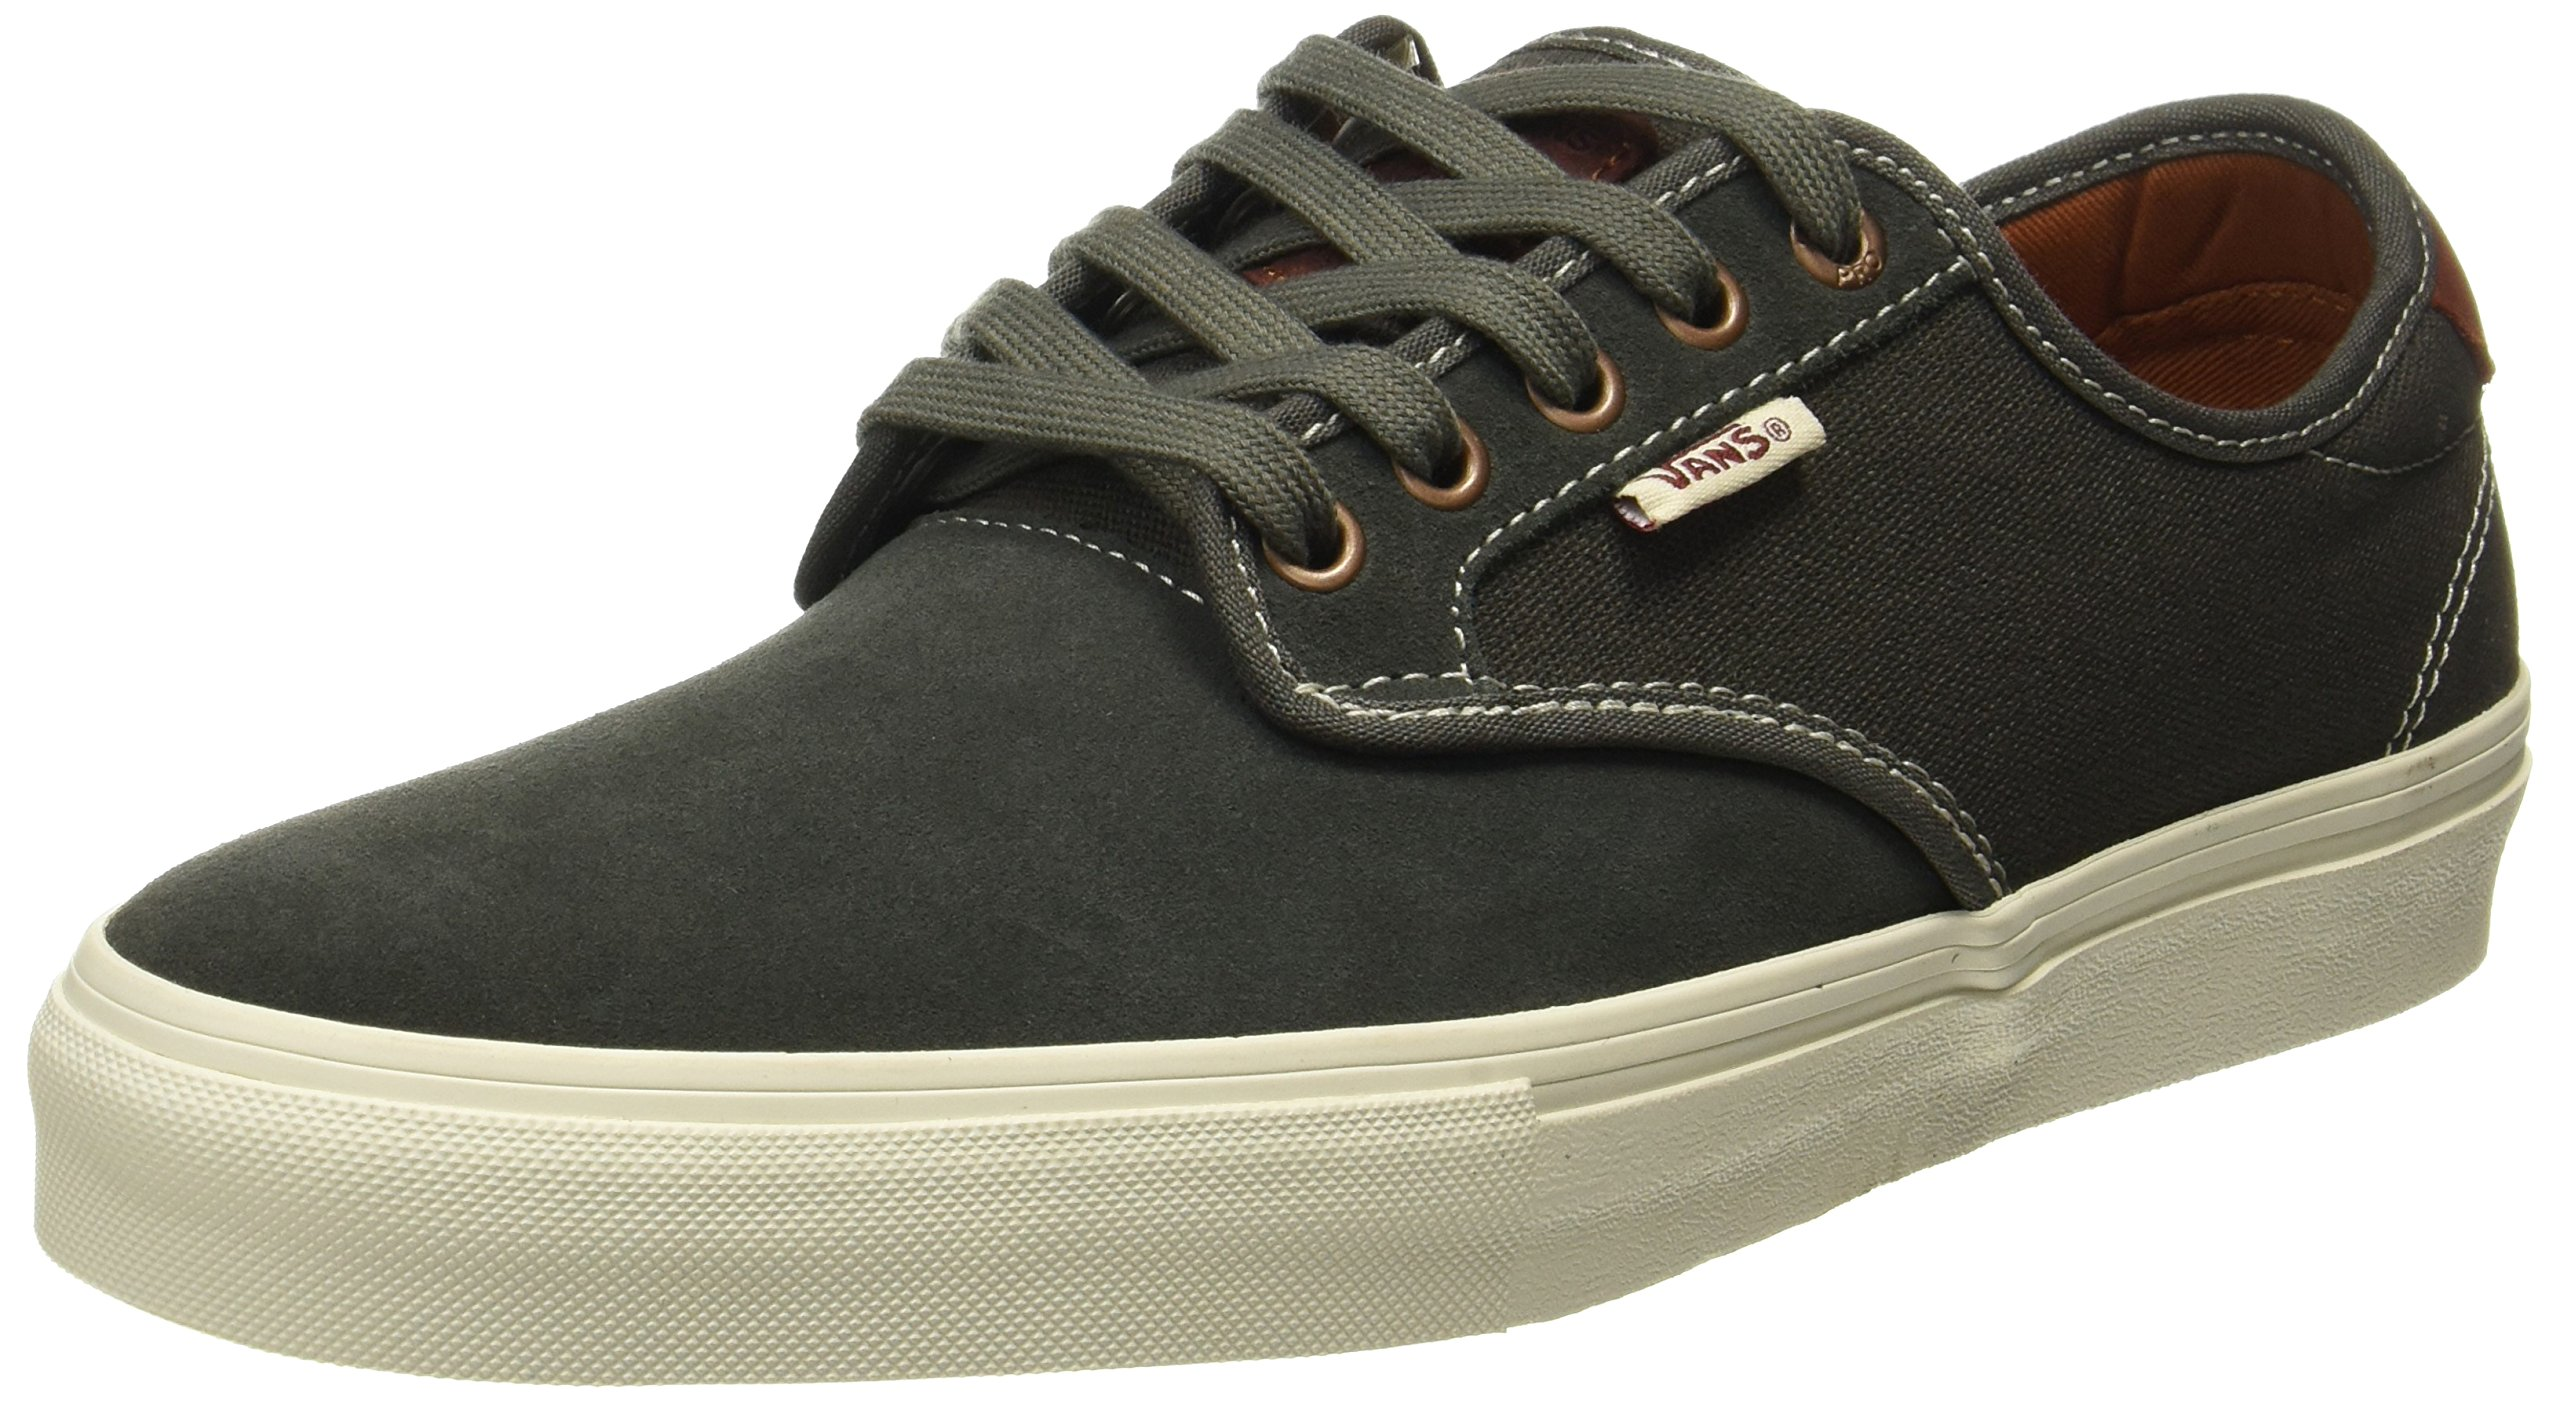 5f31b033807b Galleon - Vans Chima Ferguson Pro Mens Skateboarding Shoes (11.0 ...